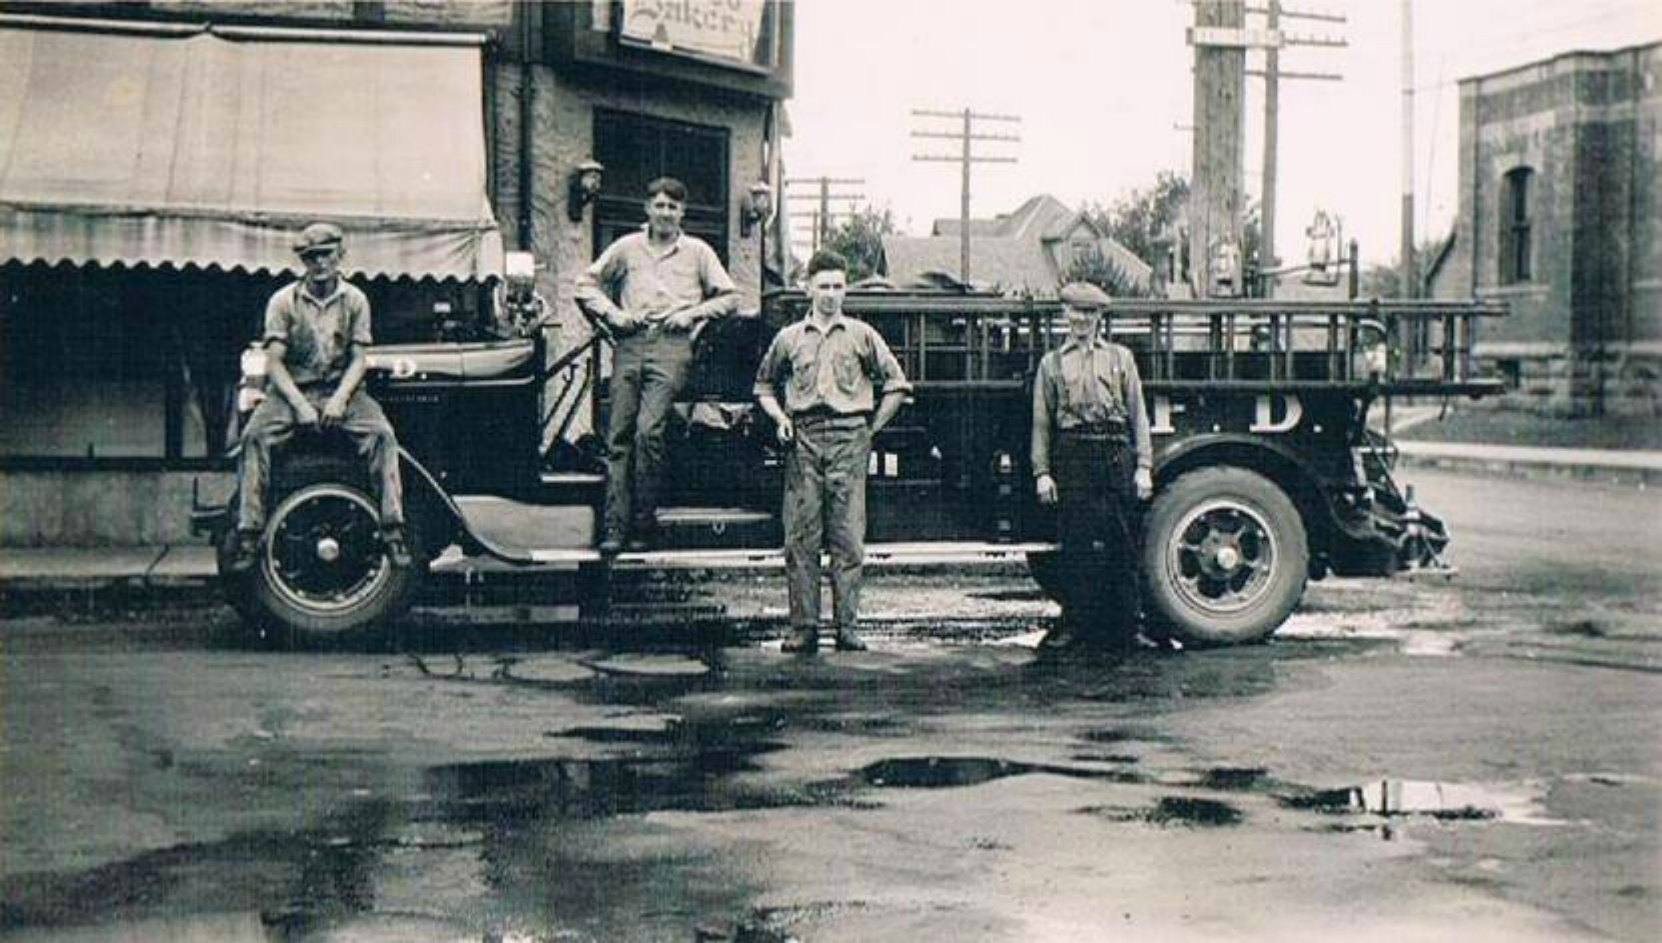 Members of the Duncan Volunteer Fire Department in the summer of 1929 on Kenneth Street at the Craig Street intersection.. Left to right: Rupert MacDonald, Claude Green, Melvin Harris, Daniel R. Hattie. The building behind the truck is 211 Craig Street. (photo courtesy of Sylvia J. Dyer - family collection, used with permission)